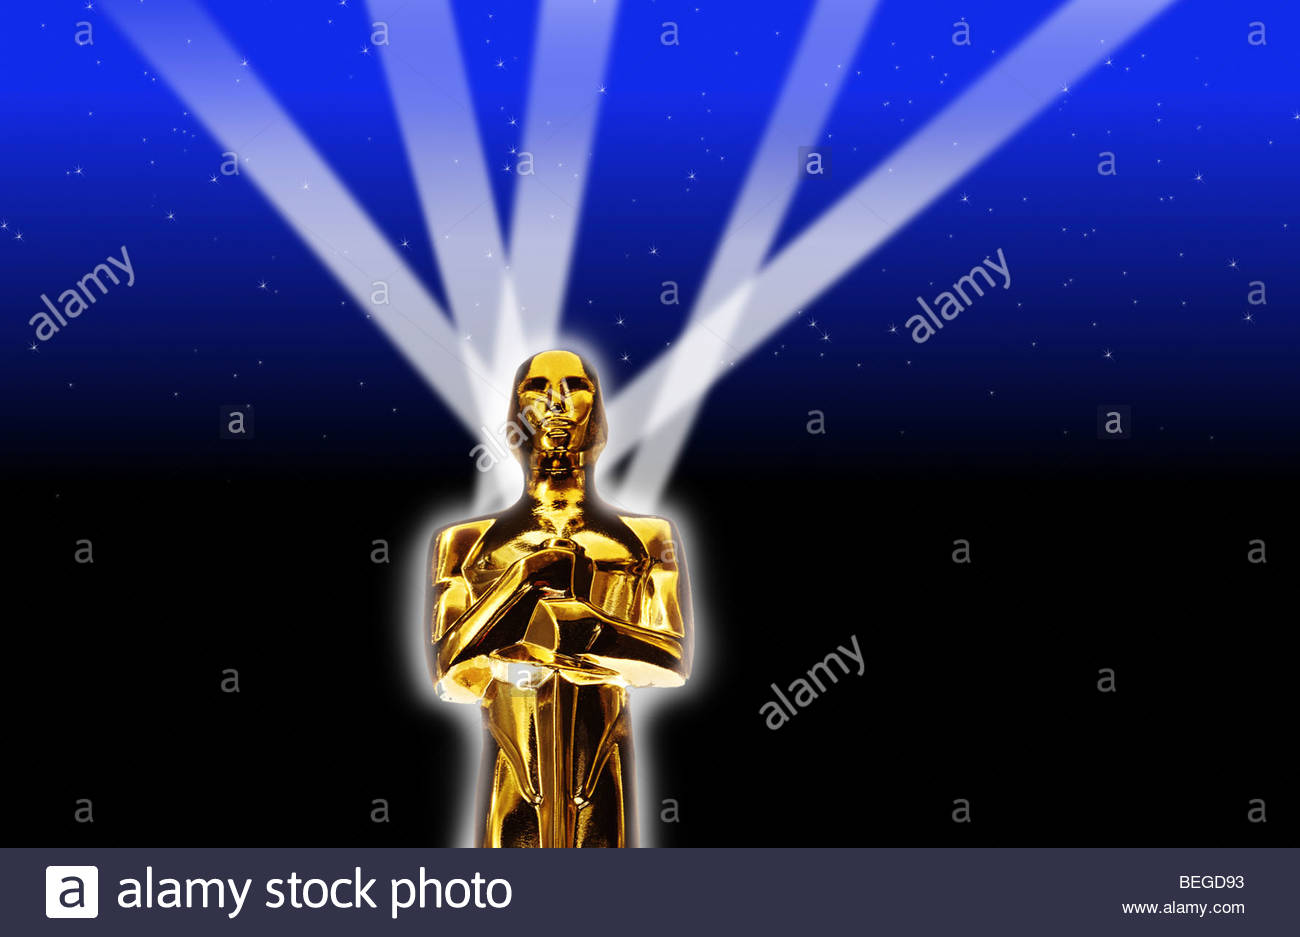 An Oscar statue with searching lights. - Stock Image